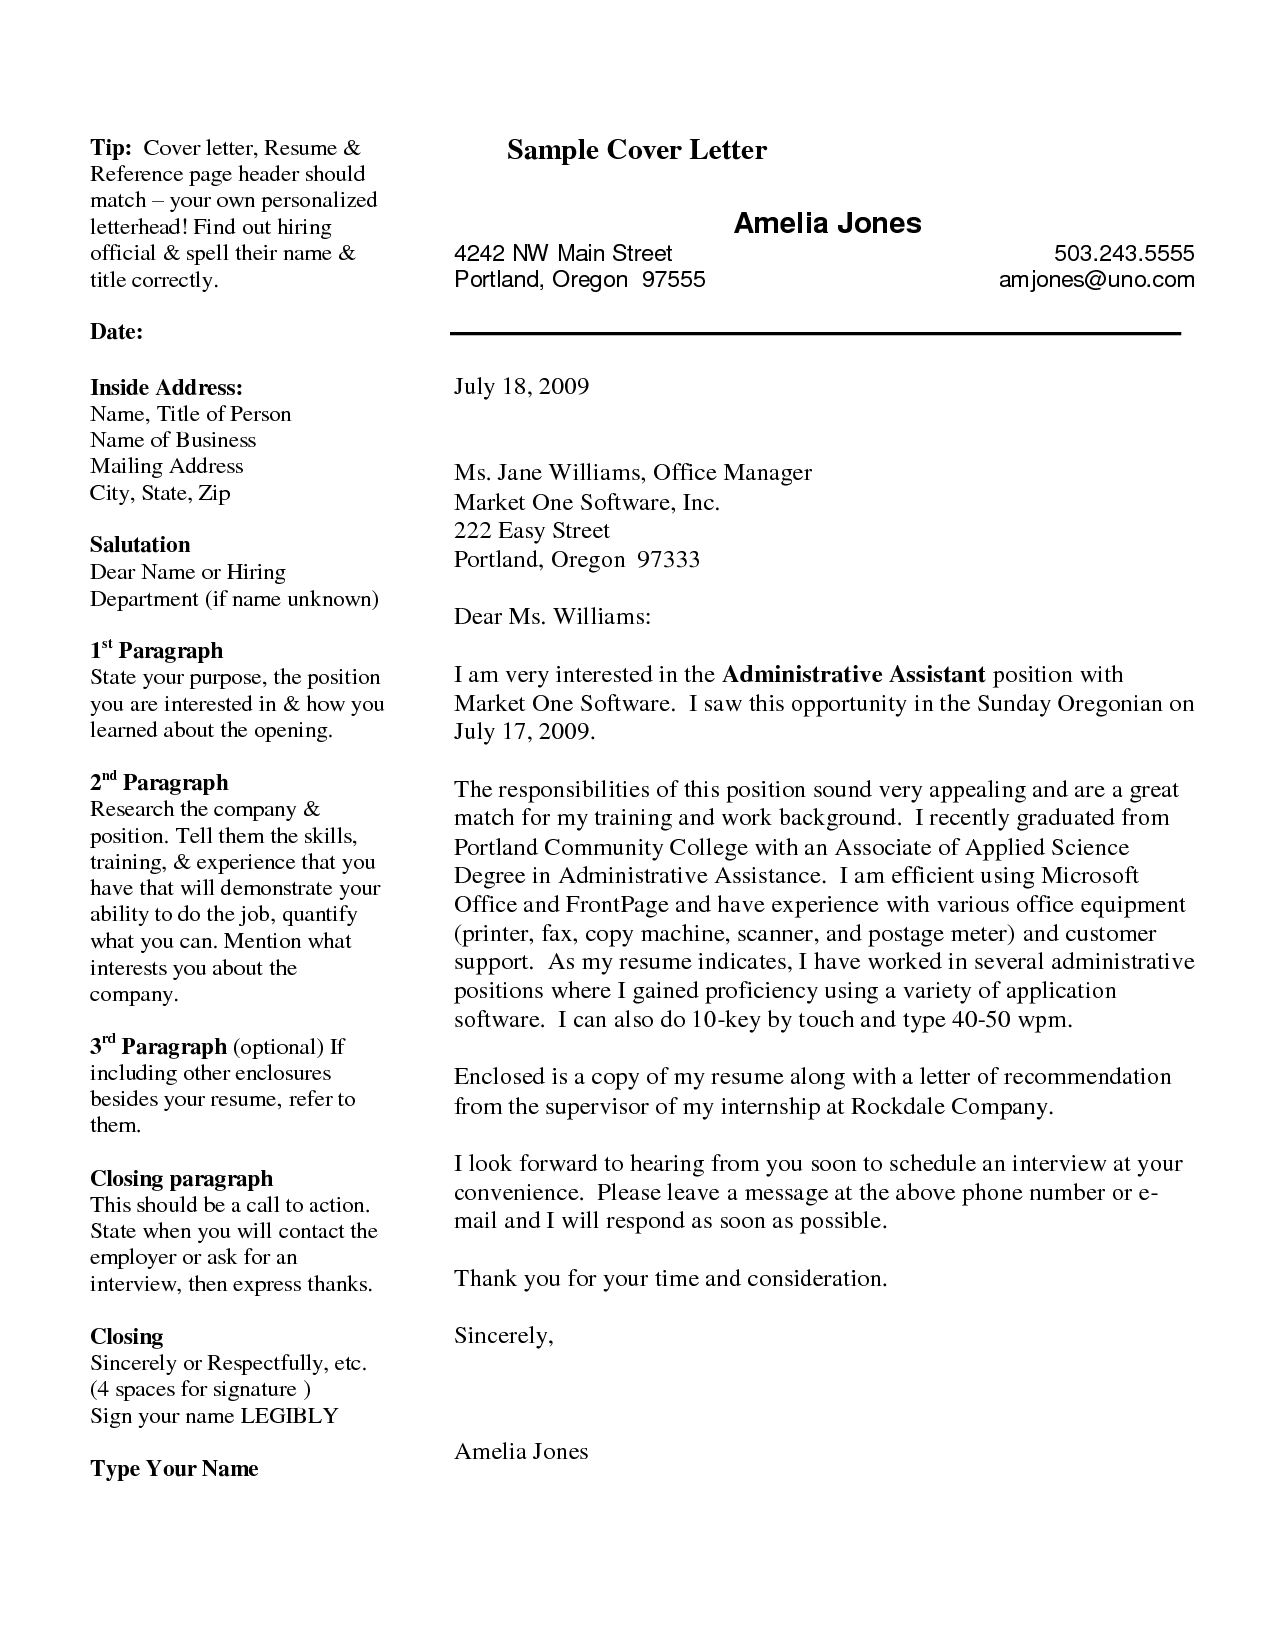 professional resume cover letter samplesprofessional resume cover job application cover letter